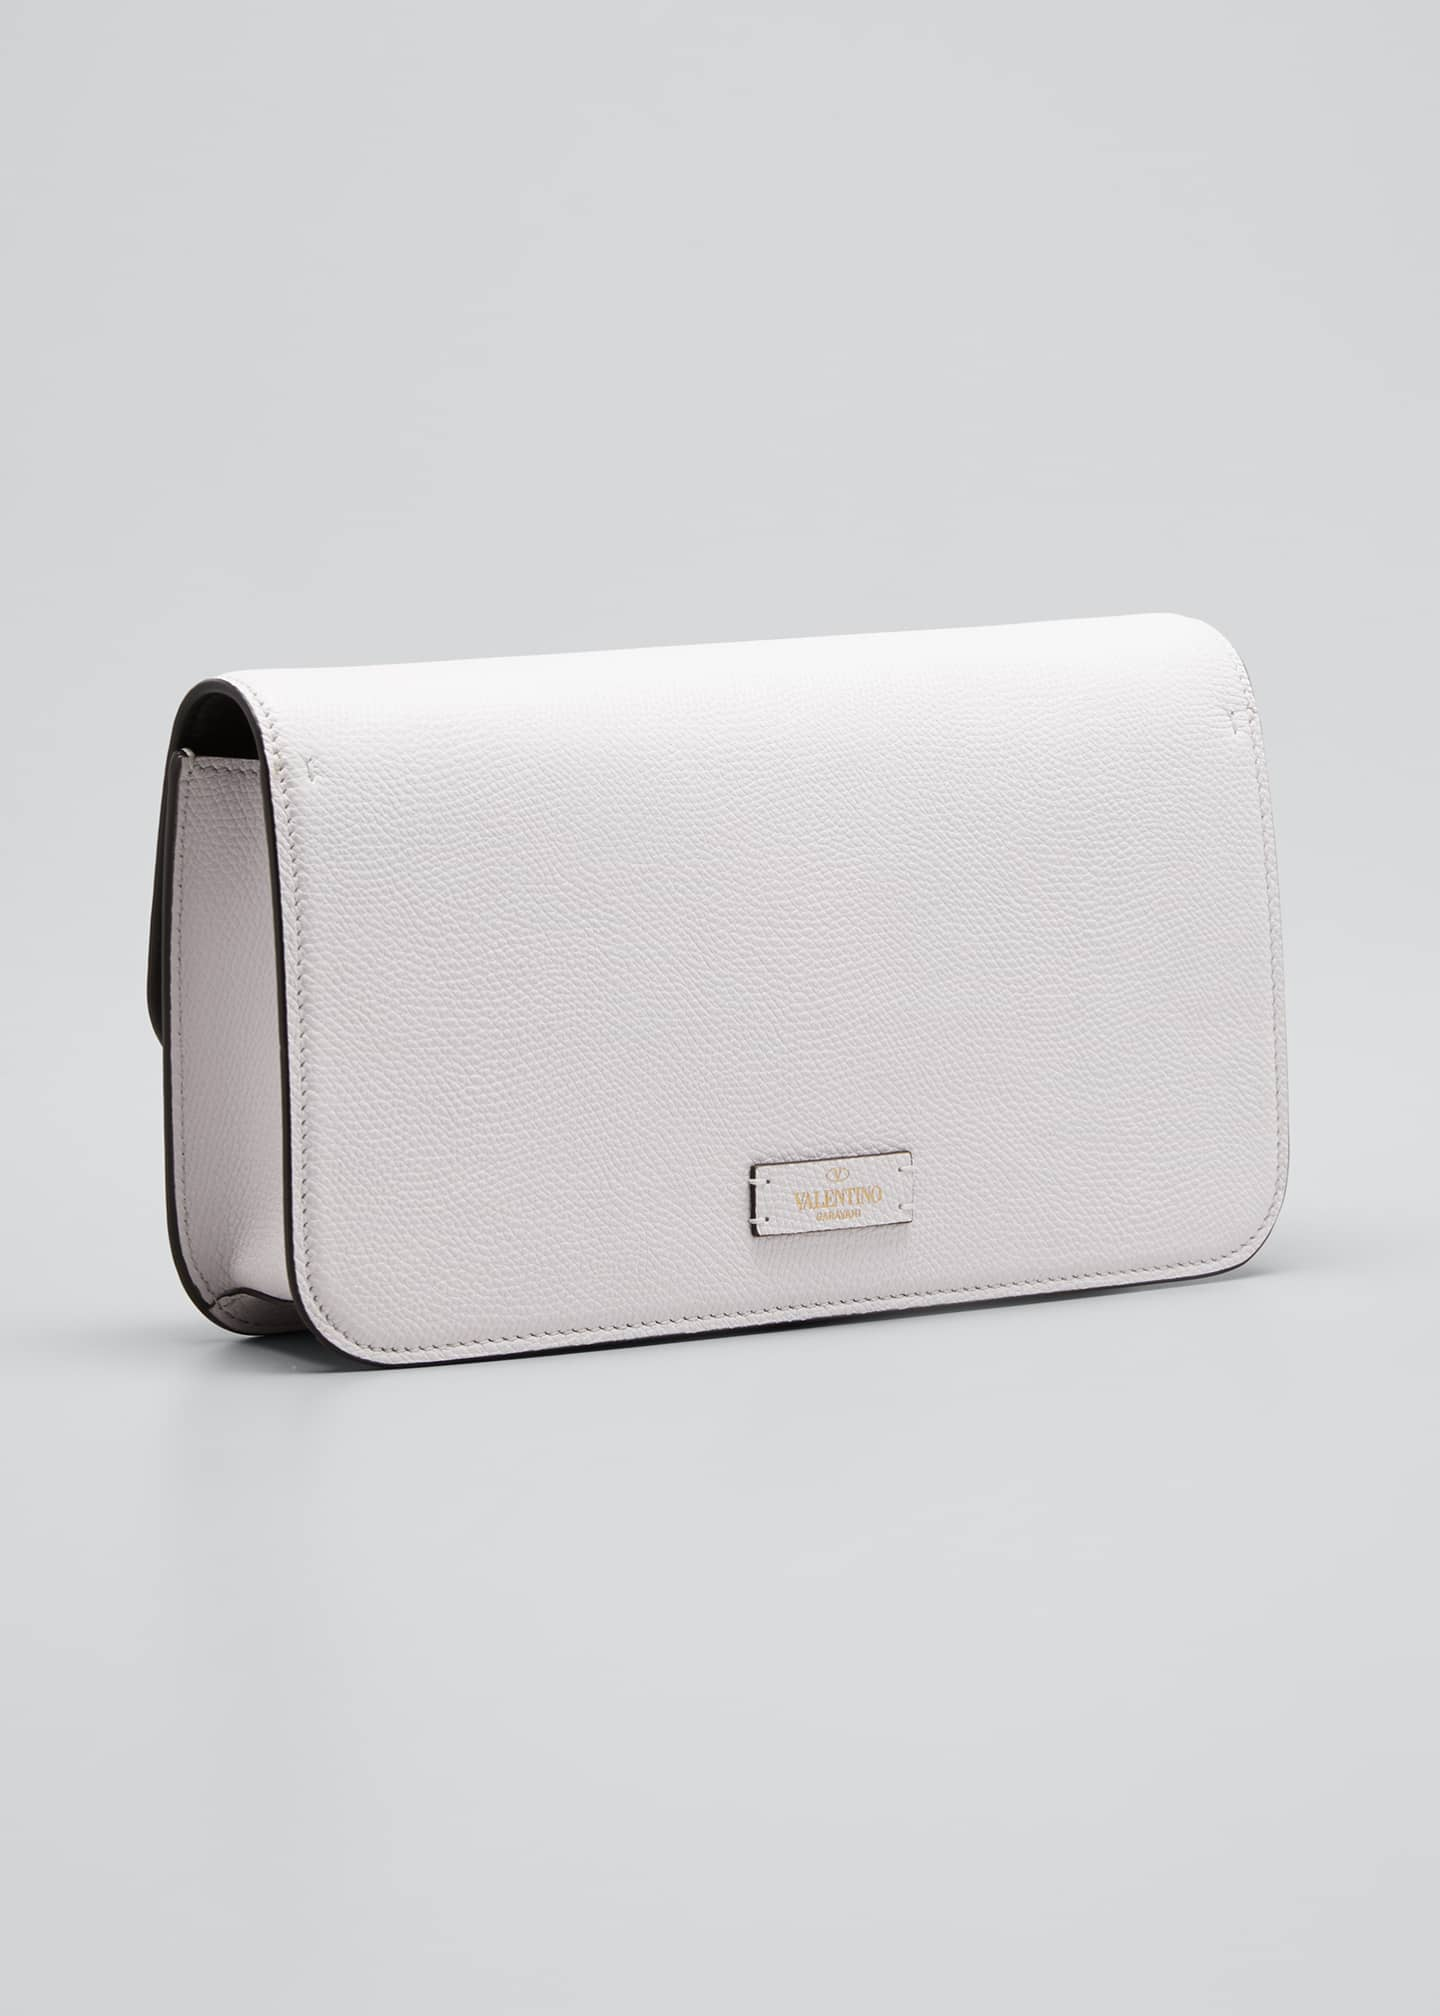 Image 3 of 5: VSLING Grain Calf Clutch Bag